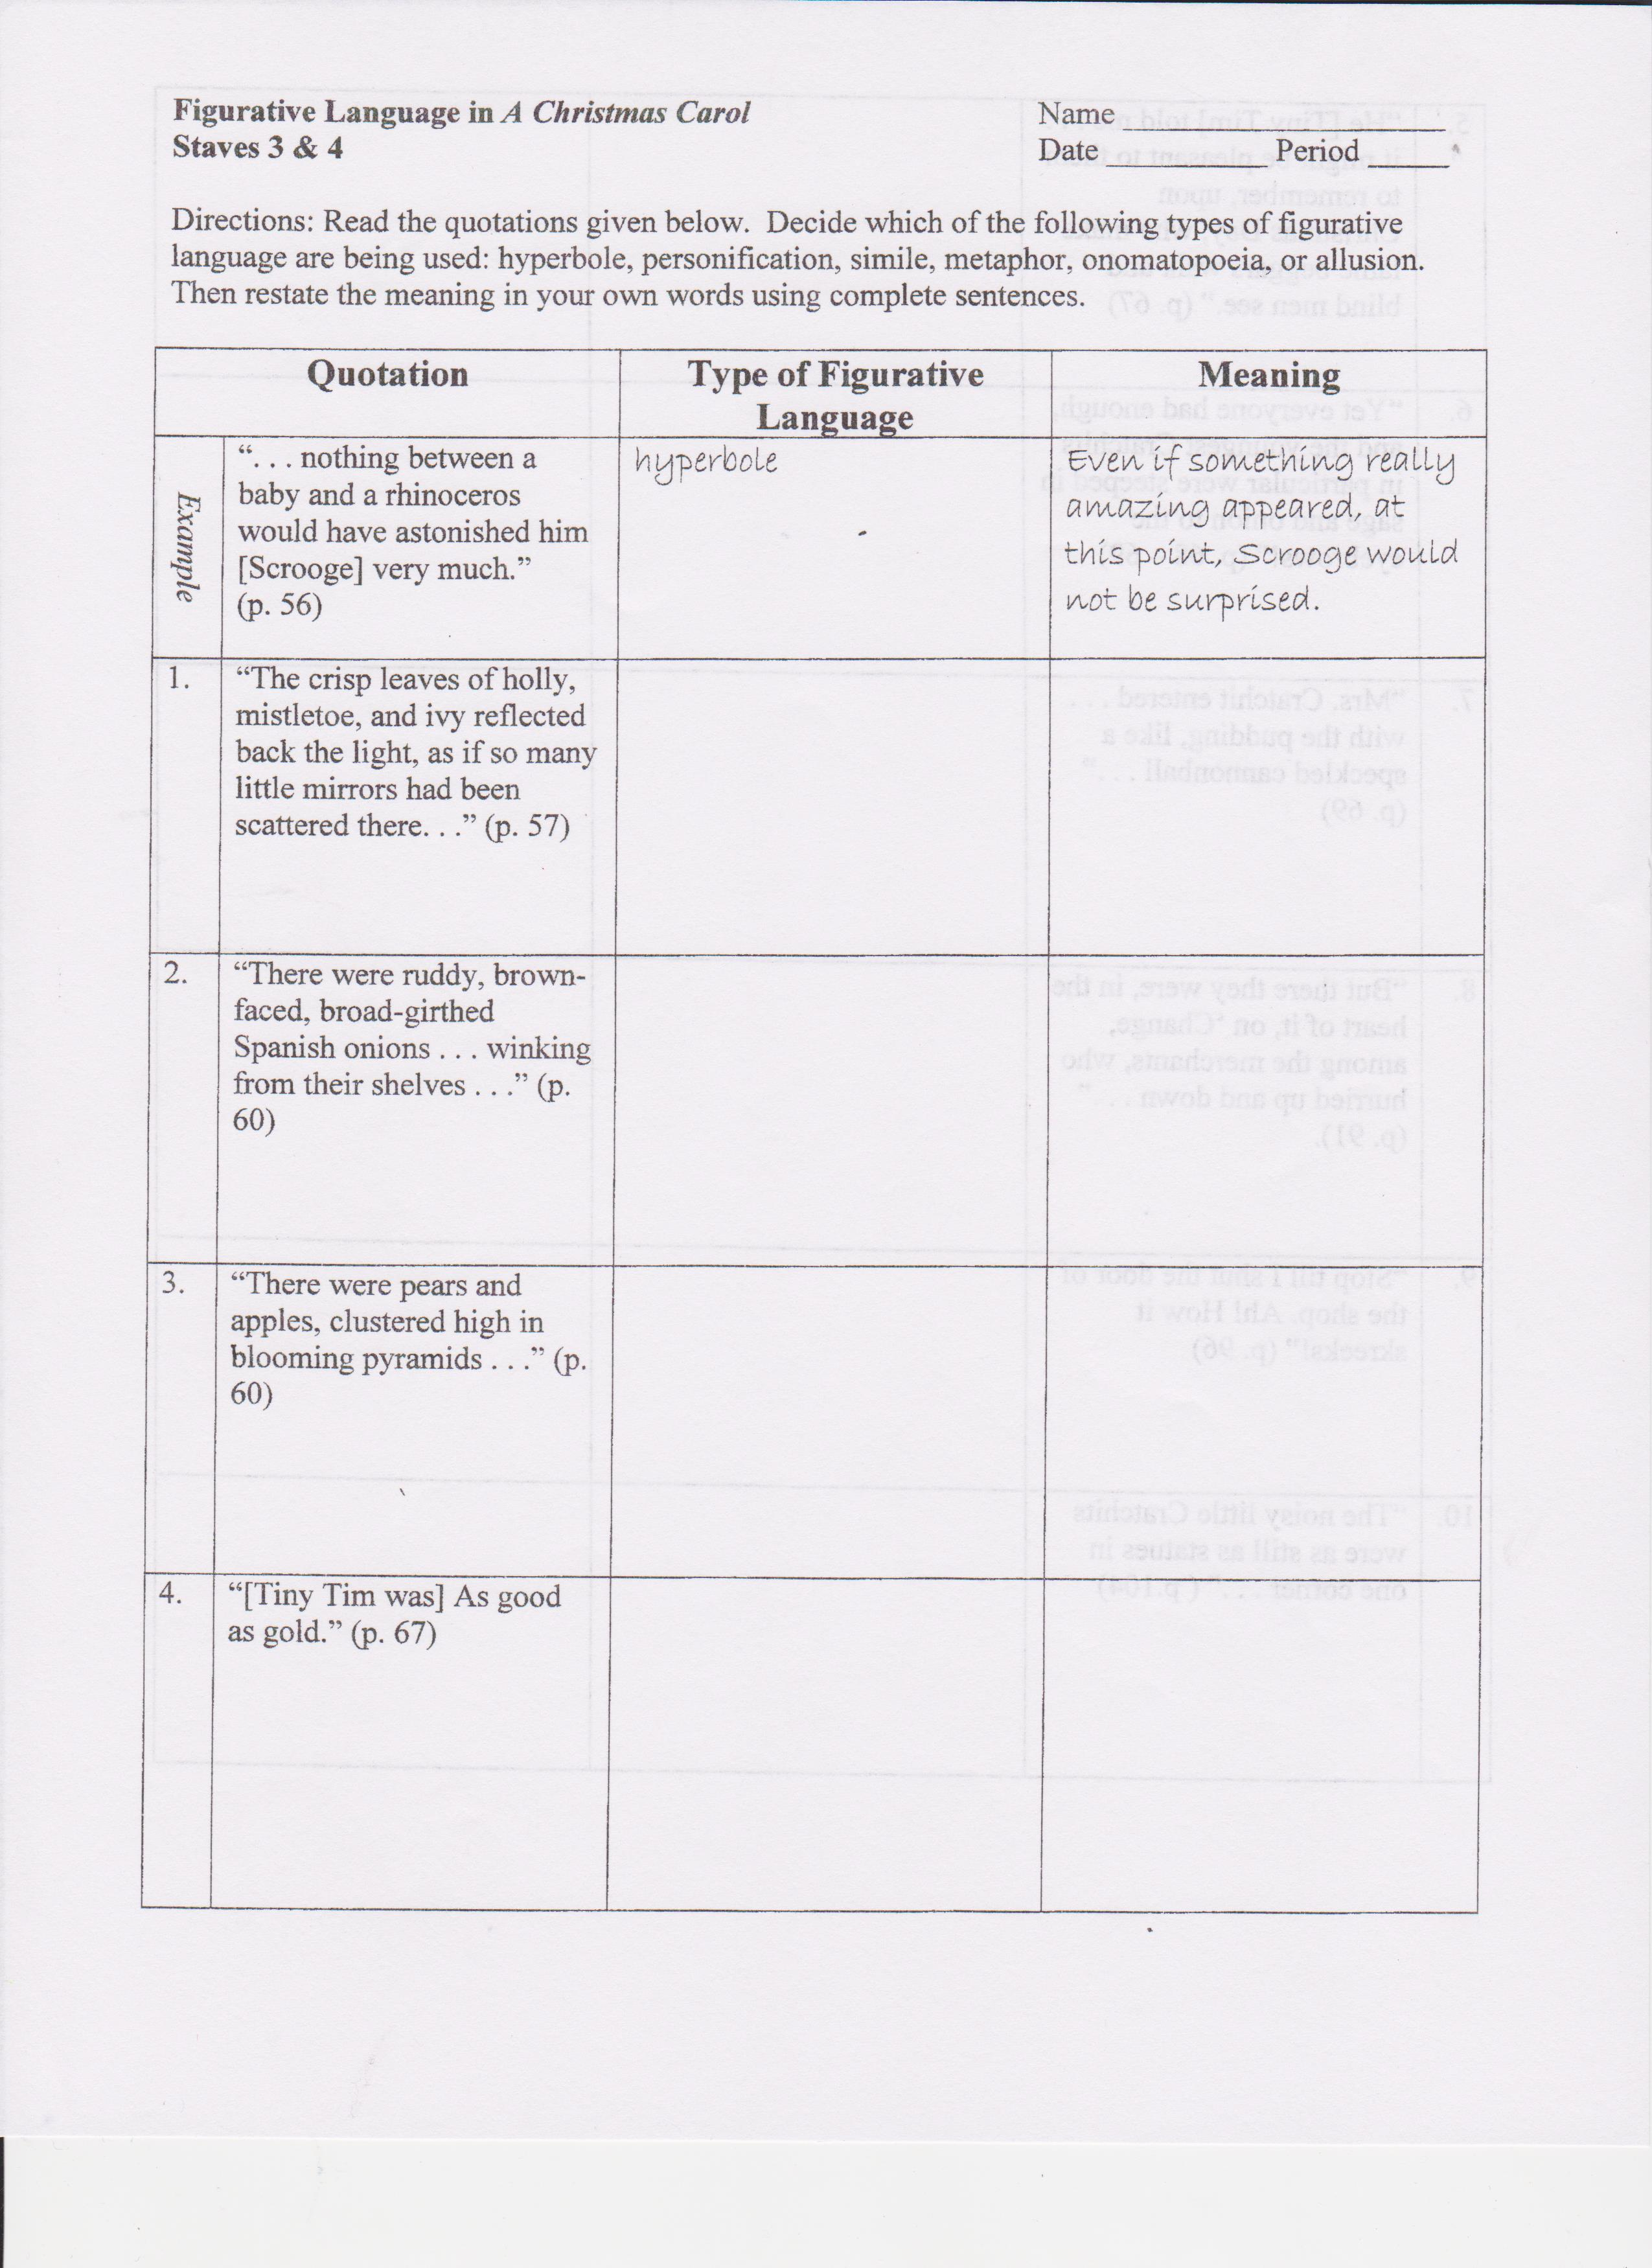 Princess Penelope Figurative Language Worksheet Answers